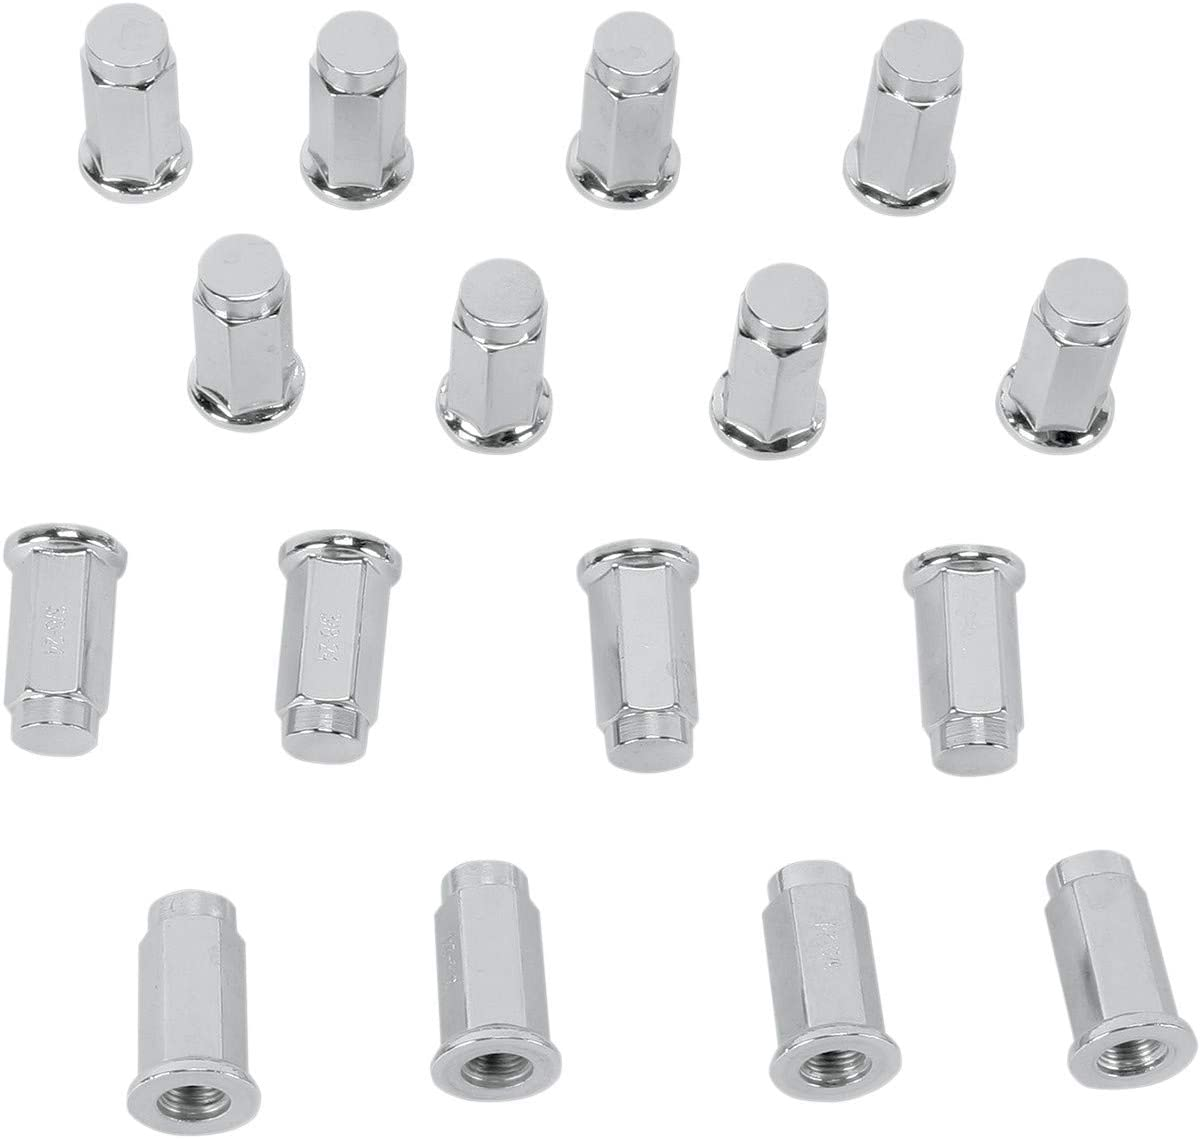 4 pack Polaris RANGER 800 XP LE 2012 Fits ITP Flat Base Chrome Lug Nut 3//8 with 14mm Head